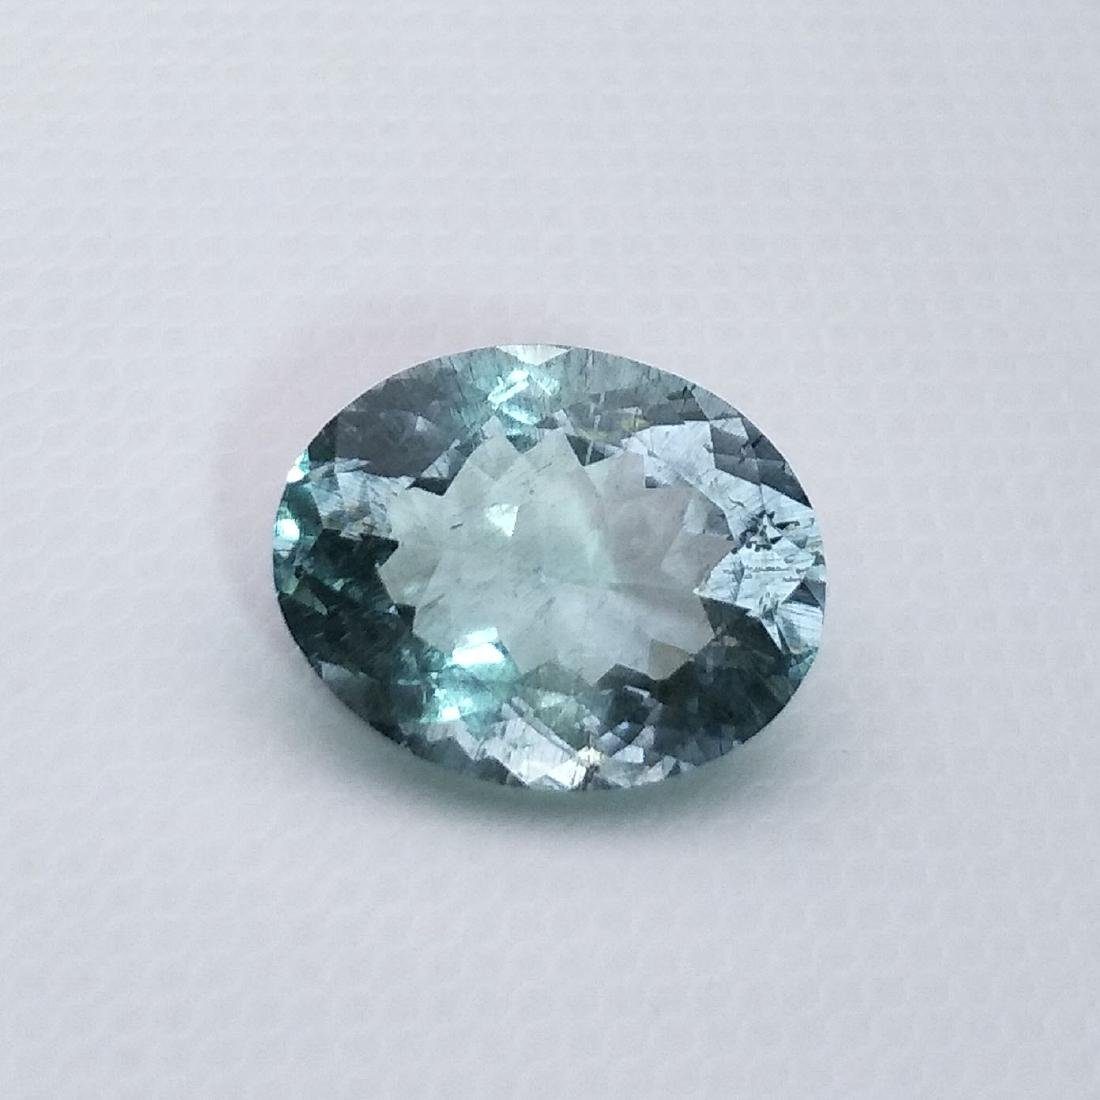 Aquamarine - 5.61 ct